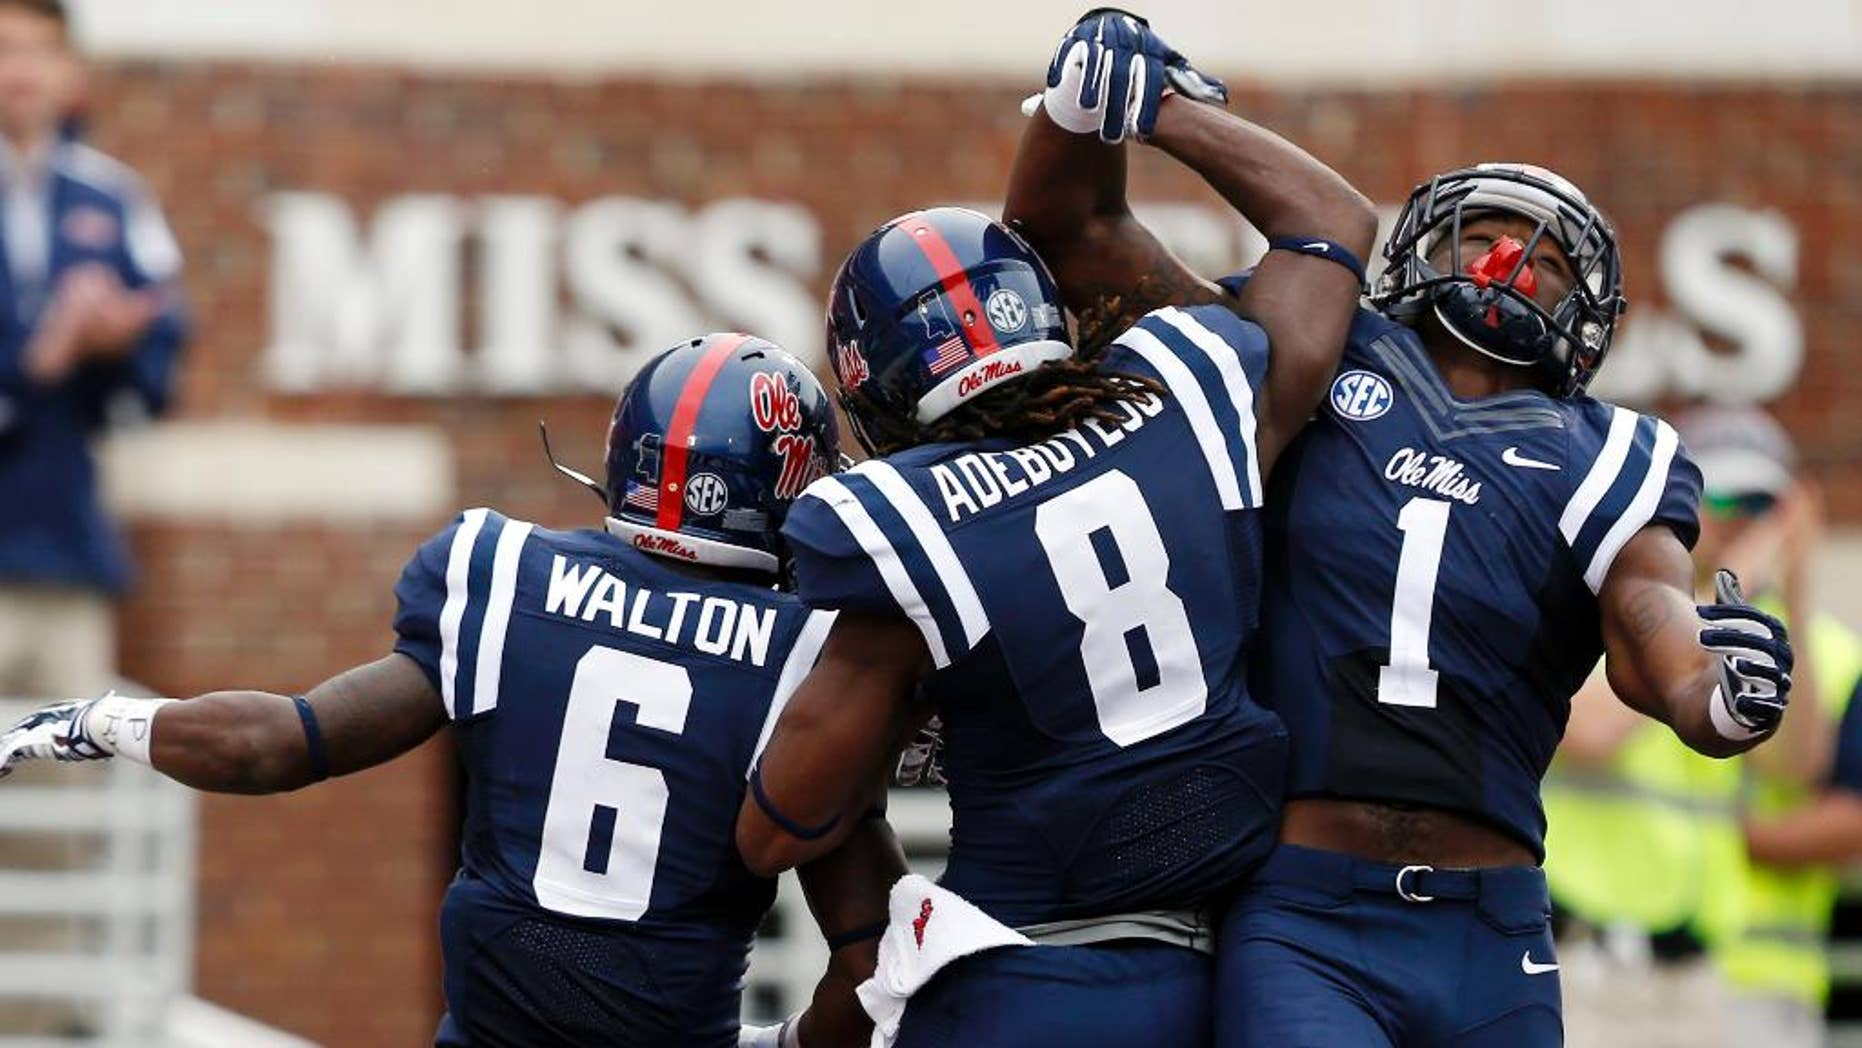 Mississippi running back Jaylen Walton (6) and teammates Quincy Adeboyejo, and Laquon Treadwell (1) celebrate Walton's 71-yard touchdown run against  Louisiana-Lafayette during the second half at an NCAA college football game at Vaught-Hemingway Stadium in Oxford, Miss., Saturday, Sept. 13, 2014. No. 14 Mississippi won 56-15. (AP Photo/Rogelio V. Solis)